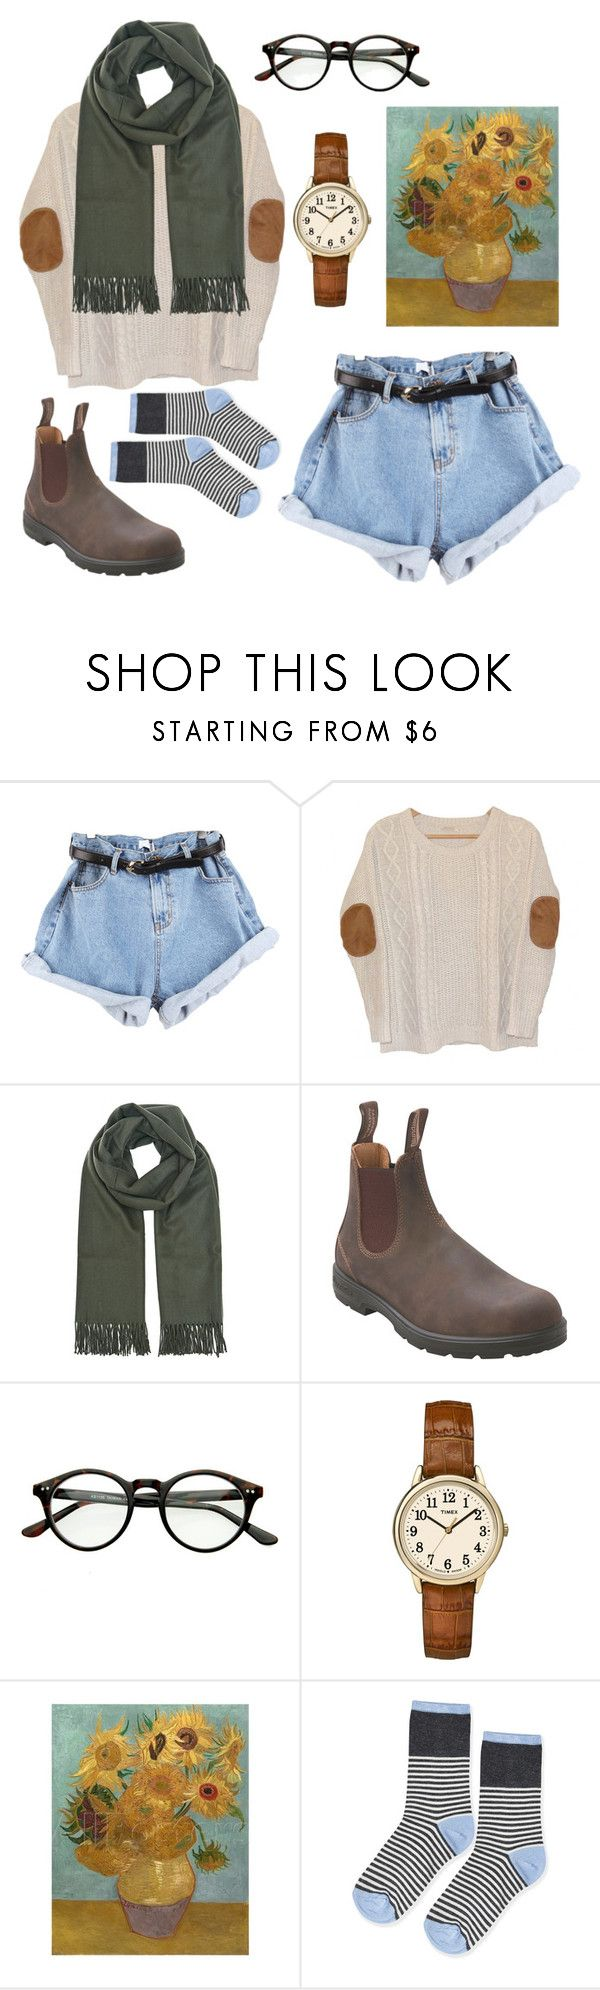 """Untitled #32"" by sbolger ❤ liked on Polyvore featuring Urban Outfitters, Blundstone, Timex, Topshop, women's clothing, women's fashion, women, female, woman and misses"